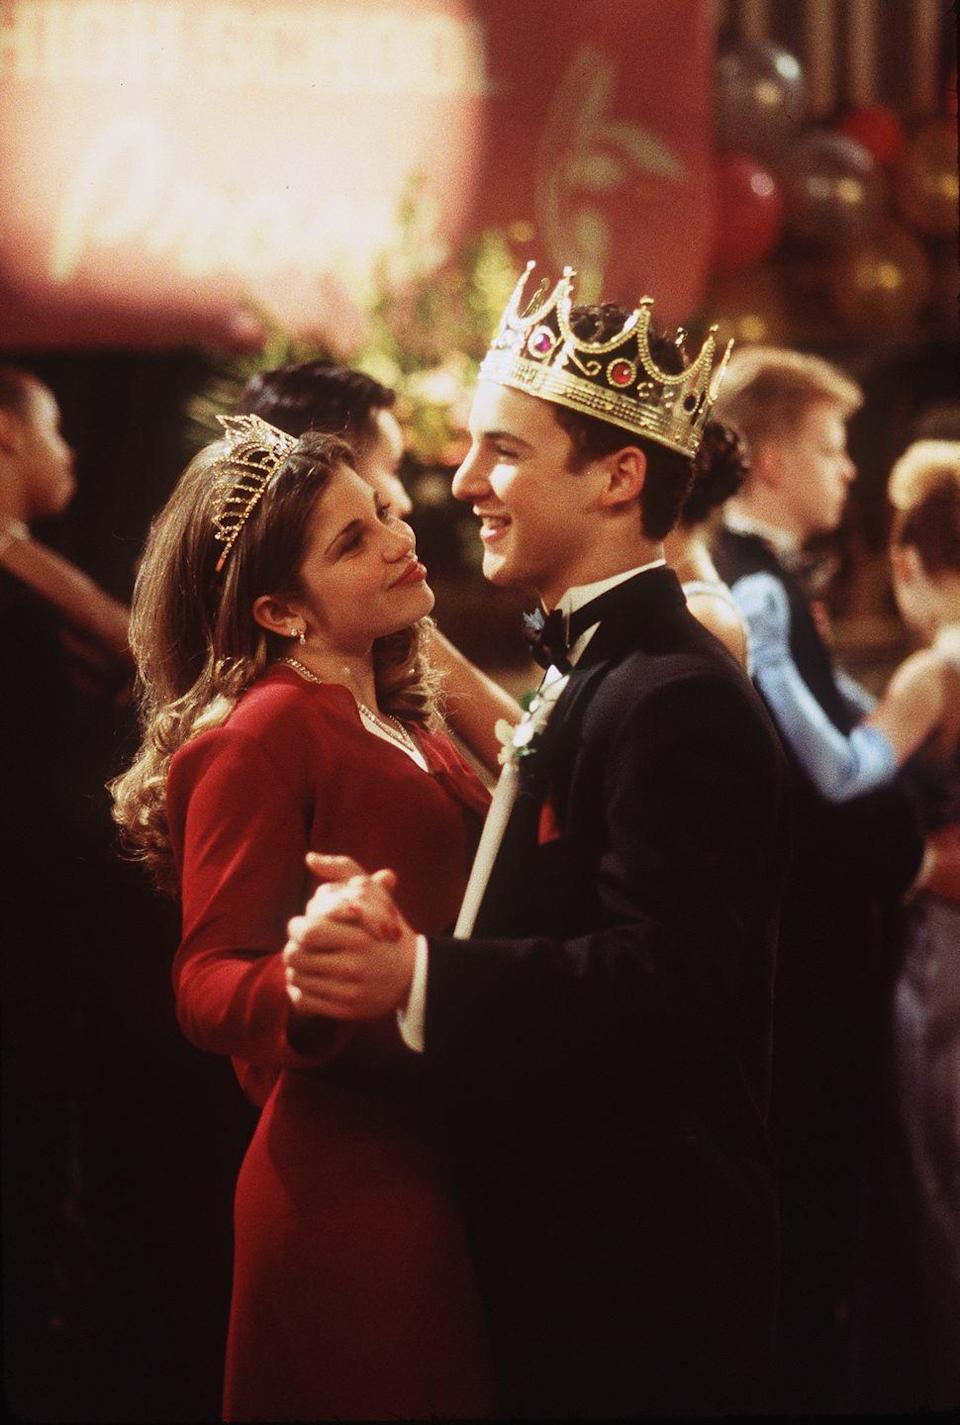 "<p>Cory and Topanga were crowned prom king and queen at prom, naturally. The only thing sweeter? How Cory's pocket square perfectly matched Topanga's red column dress. </p><p><a class=""link rapid-noclick-resp"" href=""https://go.redirectingat.com?id=74968X1596630&url=https%3A%2F%2Fwww.disneyplus.com%2Fseries%2Fboy-meets-world%2F30QWPKyQ9vTF&sref=https%3A%2F%2Fwww.redbookmag.com%2Ffashion%2Fg36197518%2Fmost-iconic-prom-dresses-tv-movies%2F"" rel=""nofollow noopener"" target=""_blank"" data-ylk=""slk:STREAM NOW"">STREAM NOW</a></p>"